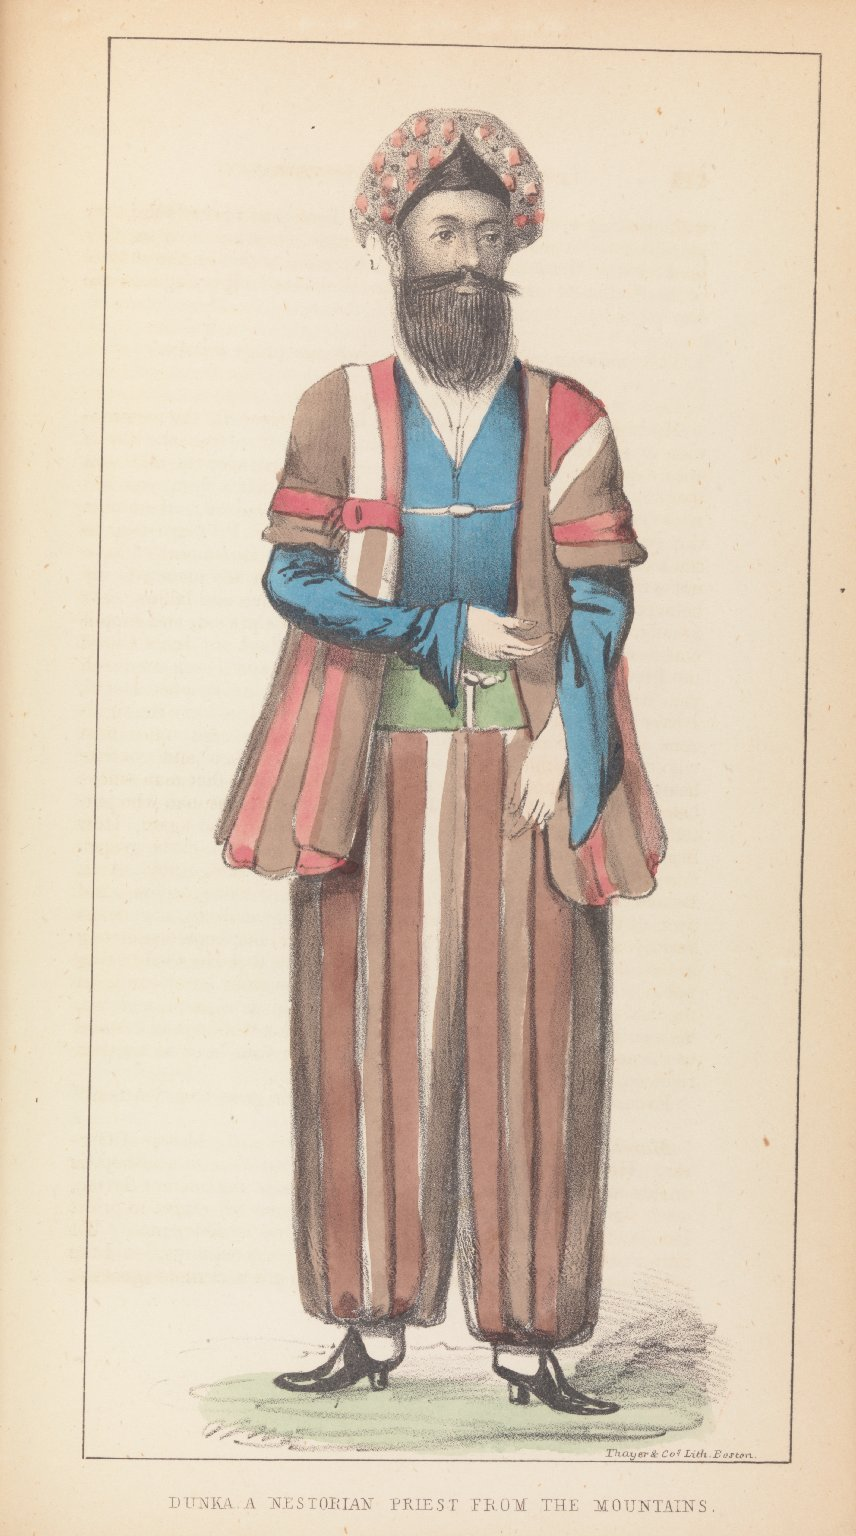 Dunka, a Nestorian Priest from the Mountains